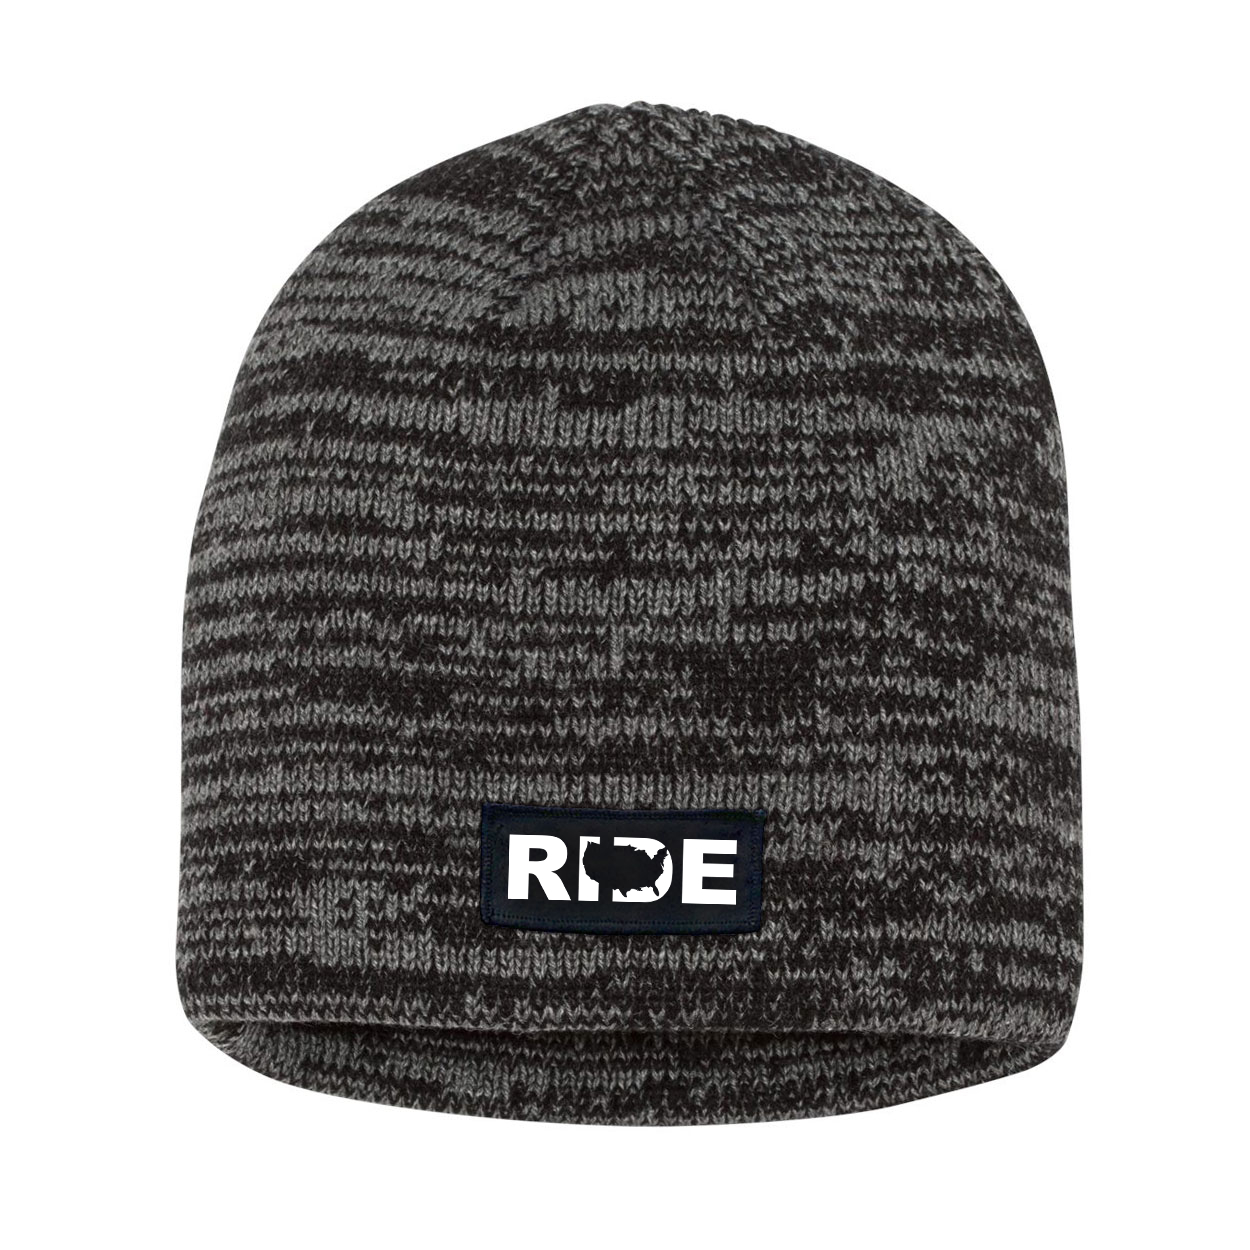 Ride United States Night Out Woven Patch Skully Marled Knit Beanie Black/Gray (White Logo)